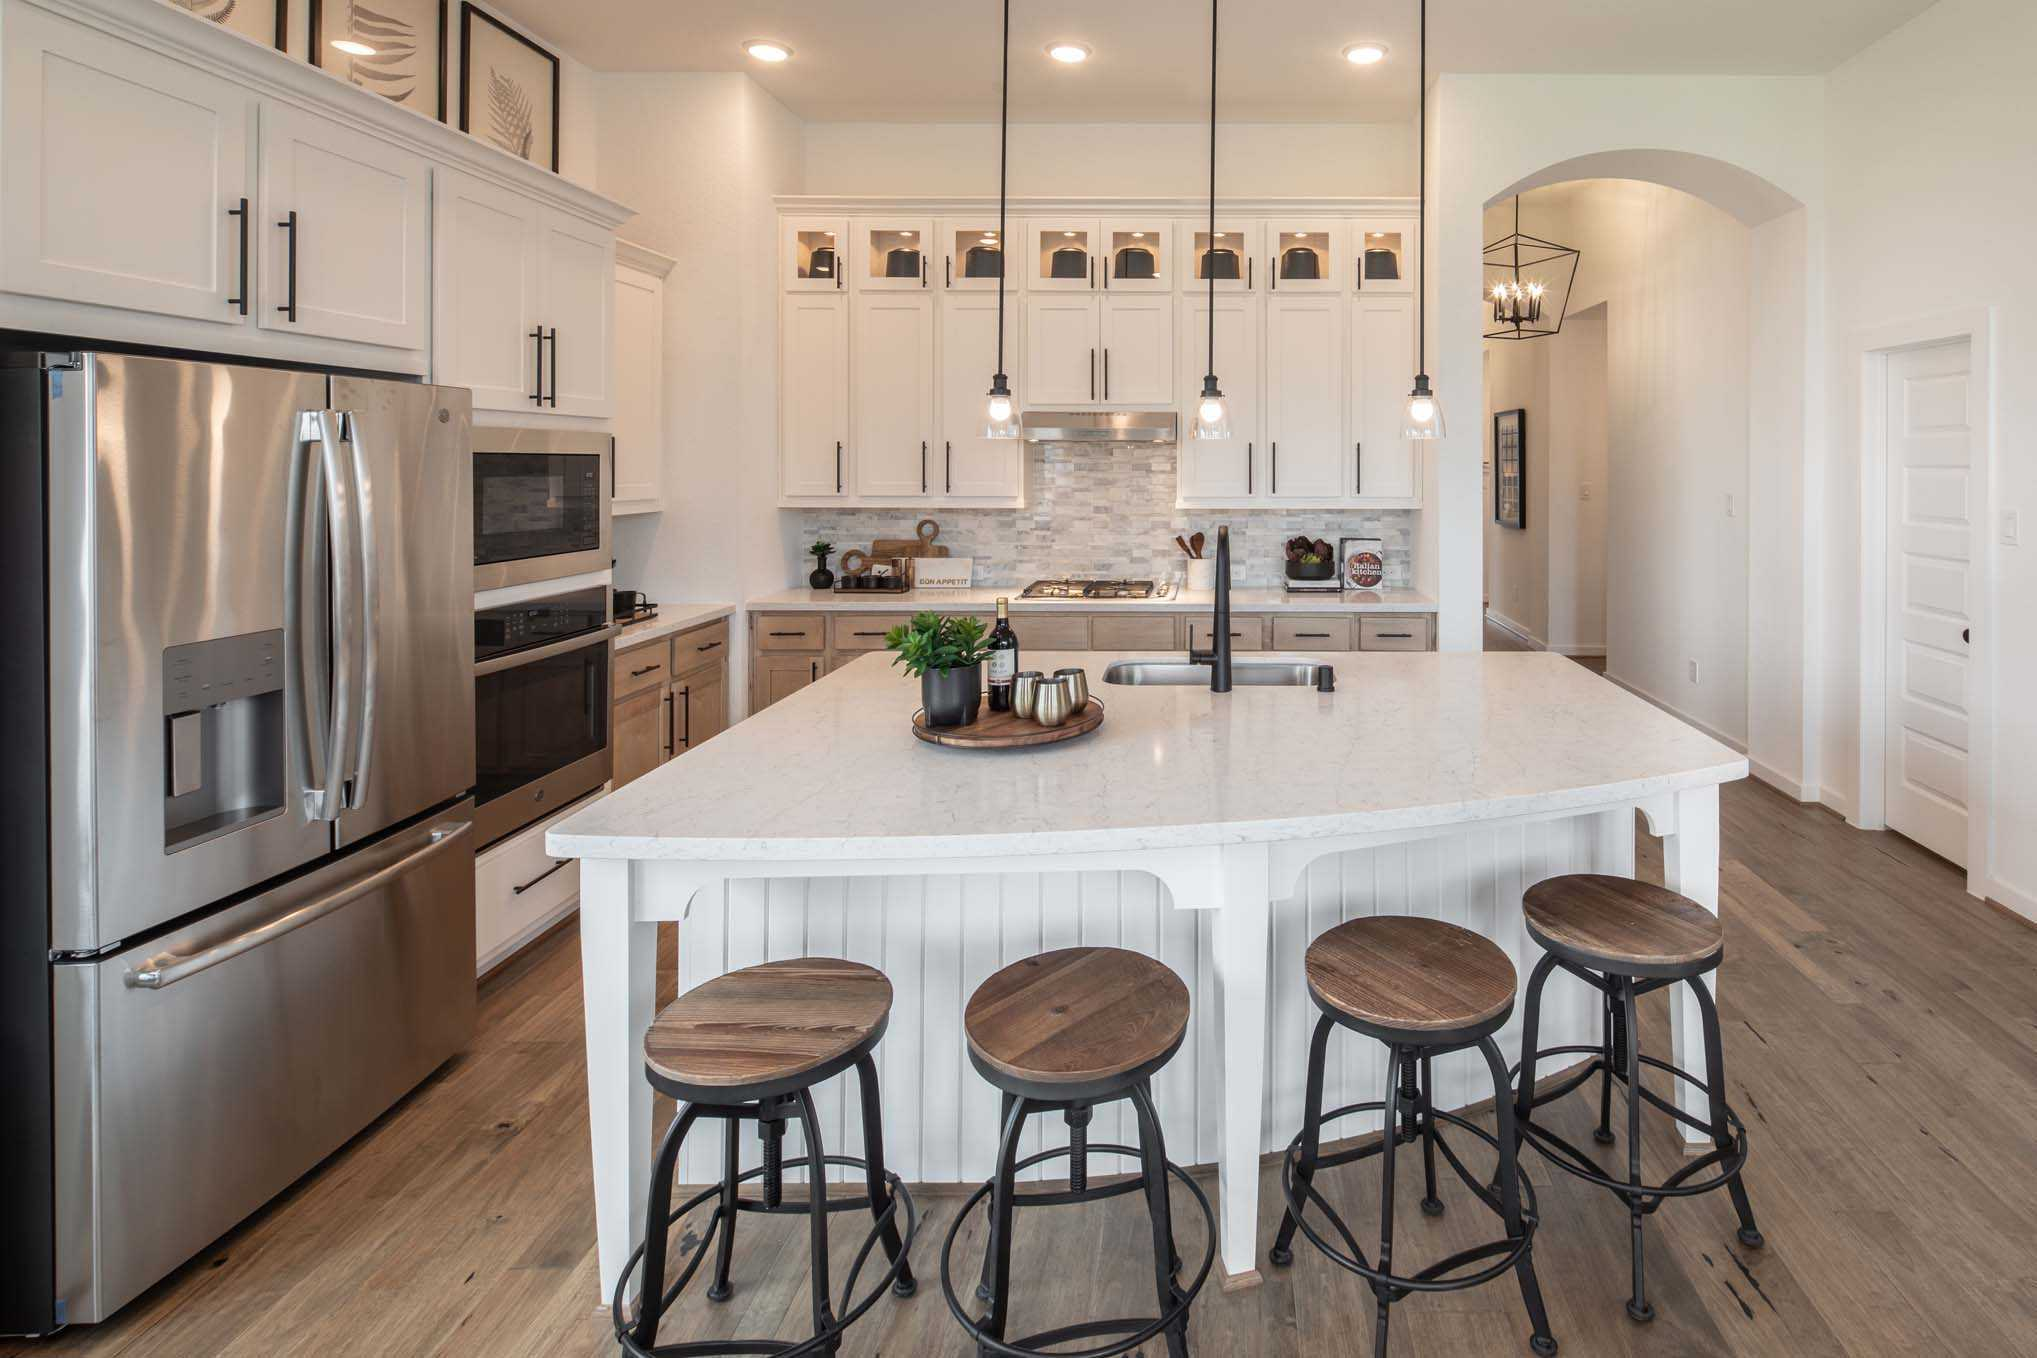 Kitchen featured in the Plan Davenport By Highland Homes in San Antonio, TX